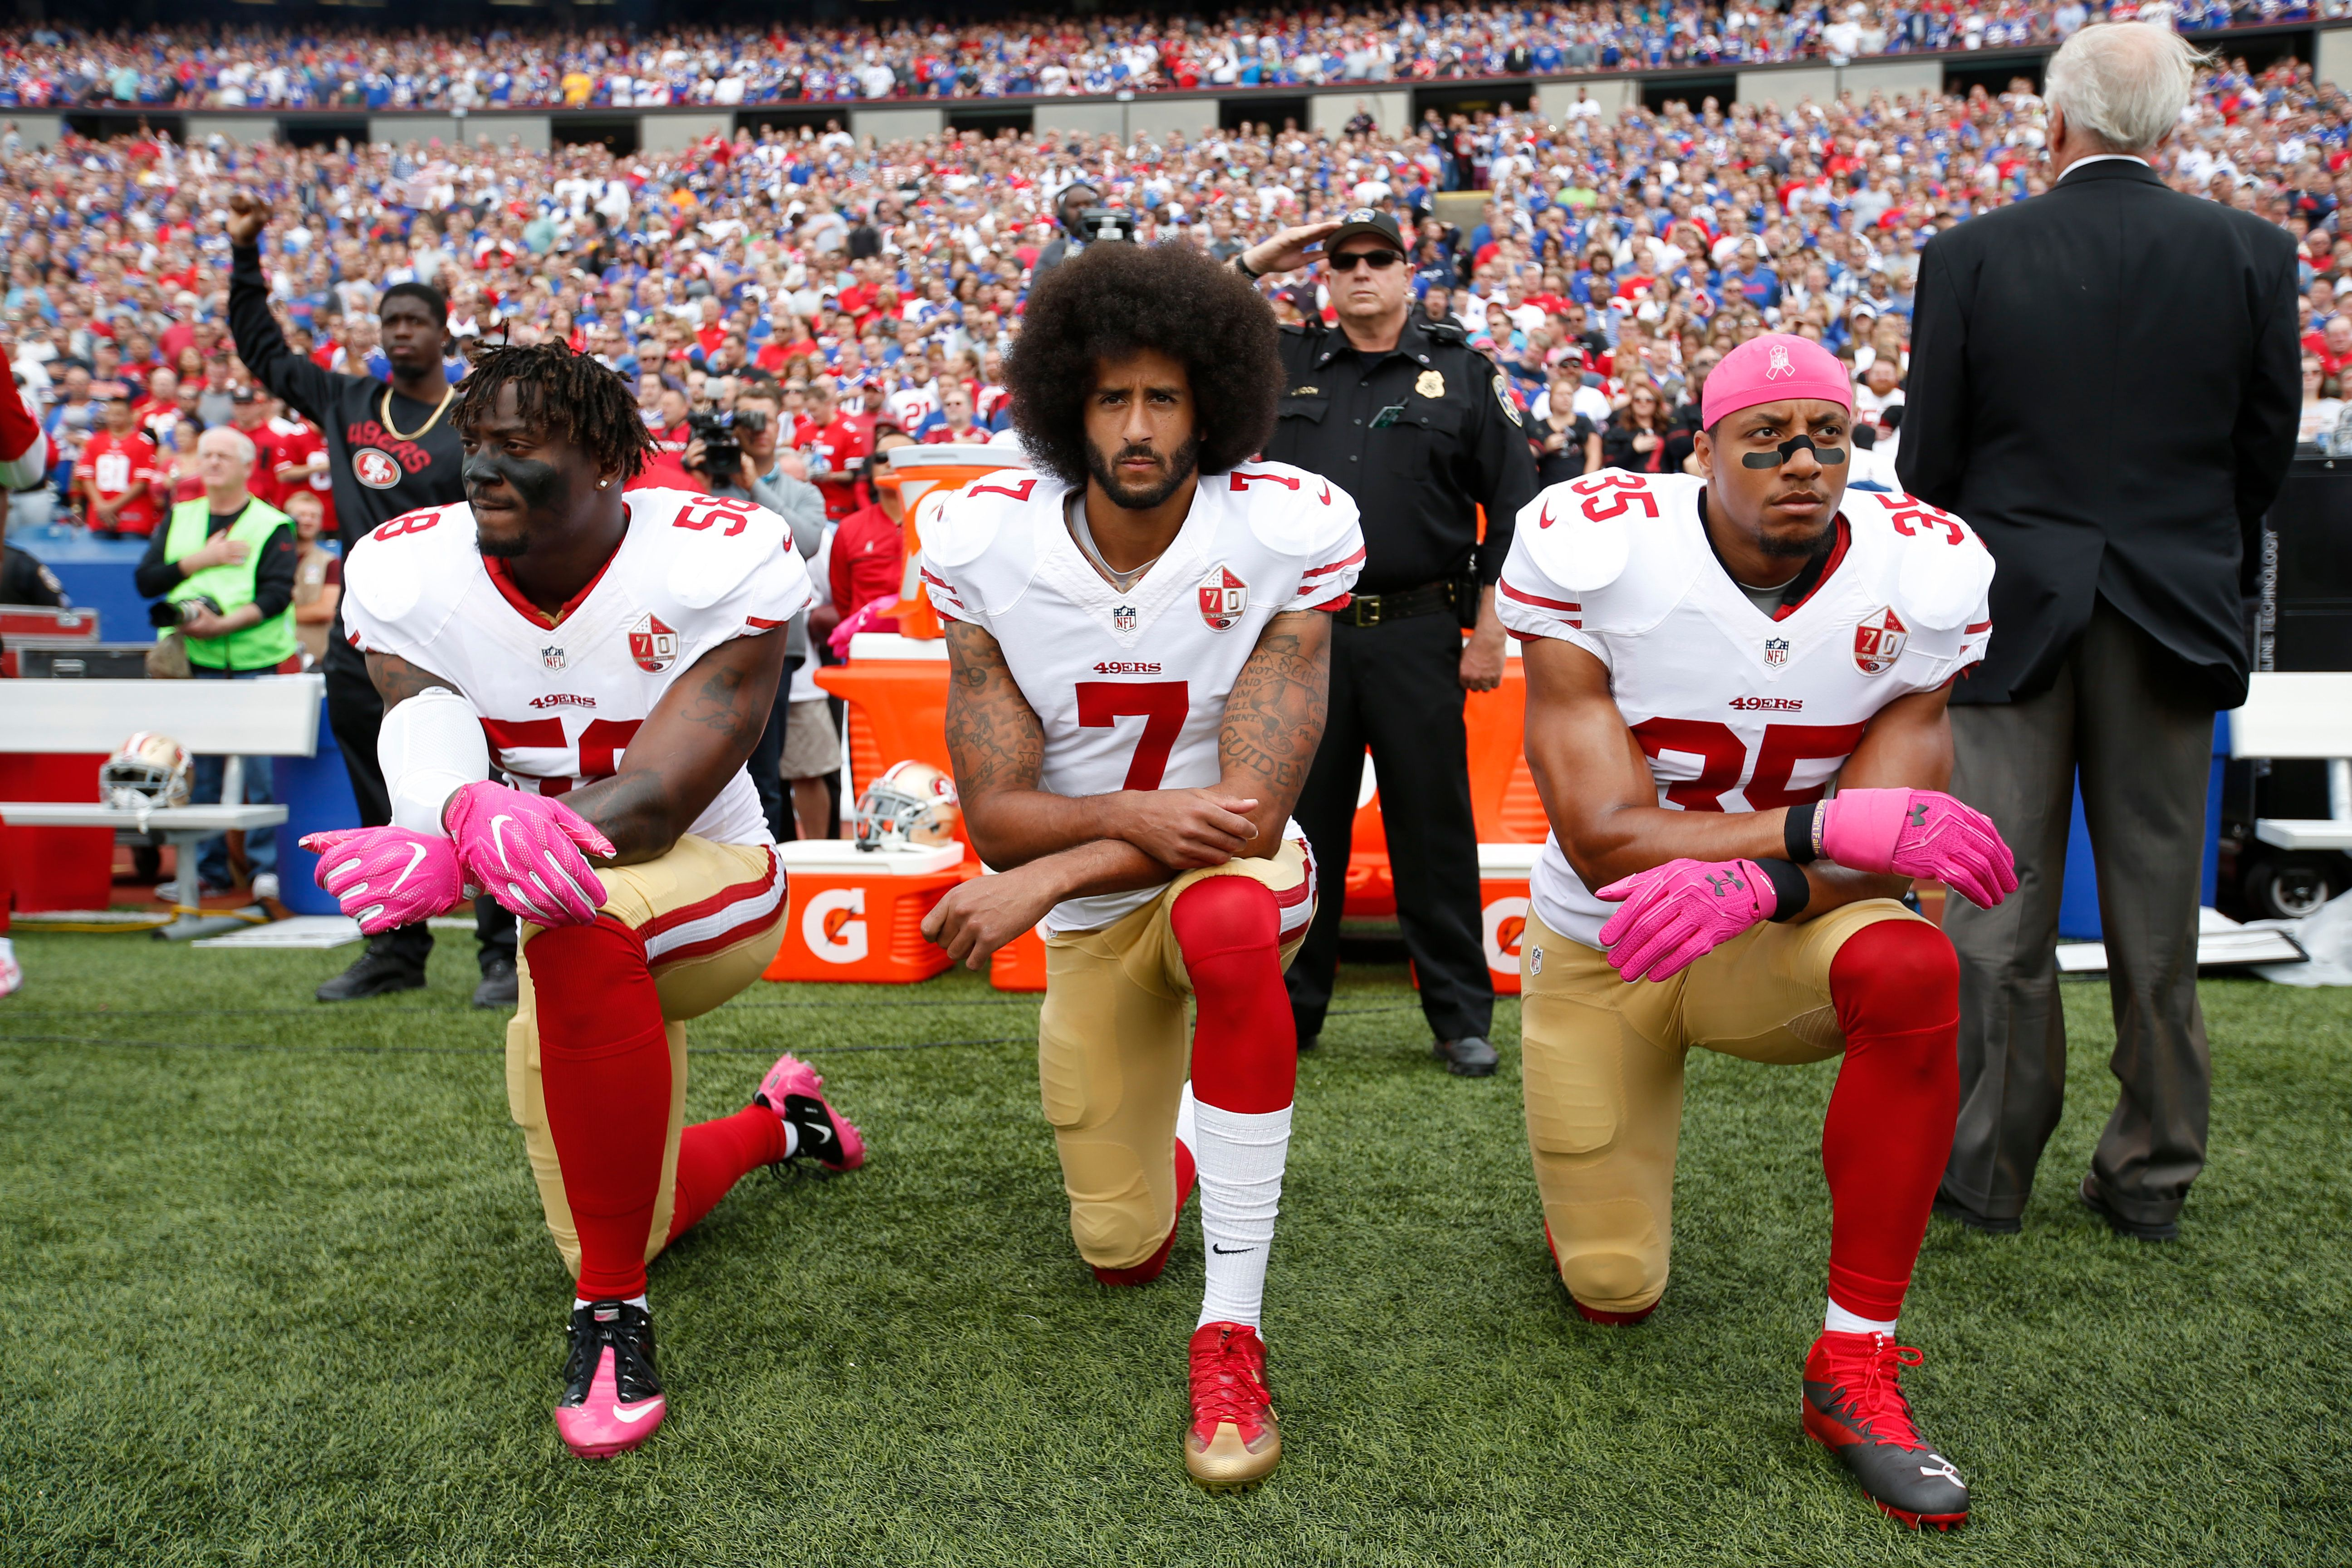 ORCHARD PARK, NY - OCTOBER 15: Eli Harold #58, Colin Kaepernick #7 and Eric Reid #35 of the San Francisco 49ers kneel in protest on the sideline, during the anthem,  prior to the game against the Buffalo Bills at New Era Field on October 16, 2016 in Orchard Park, New York. The Bills defeated the 49ers 45-16. (Photo by Michael Zagaris/San Francisco 49ers/Getty Images)